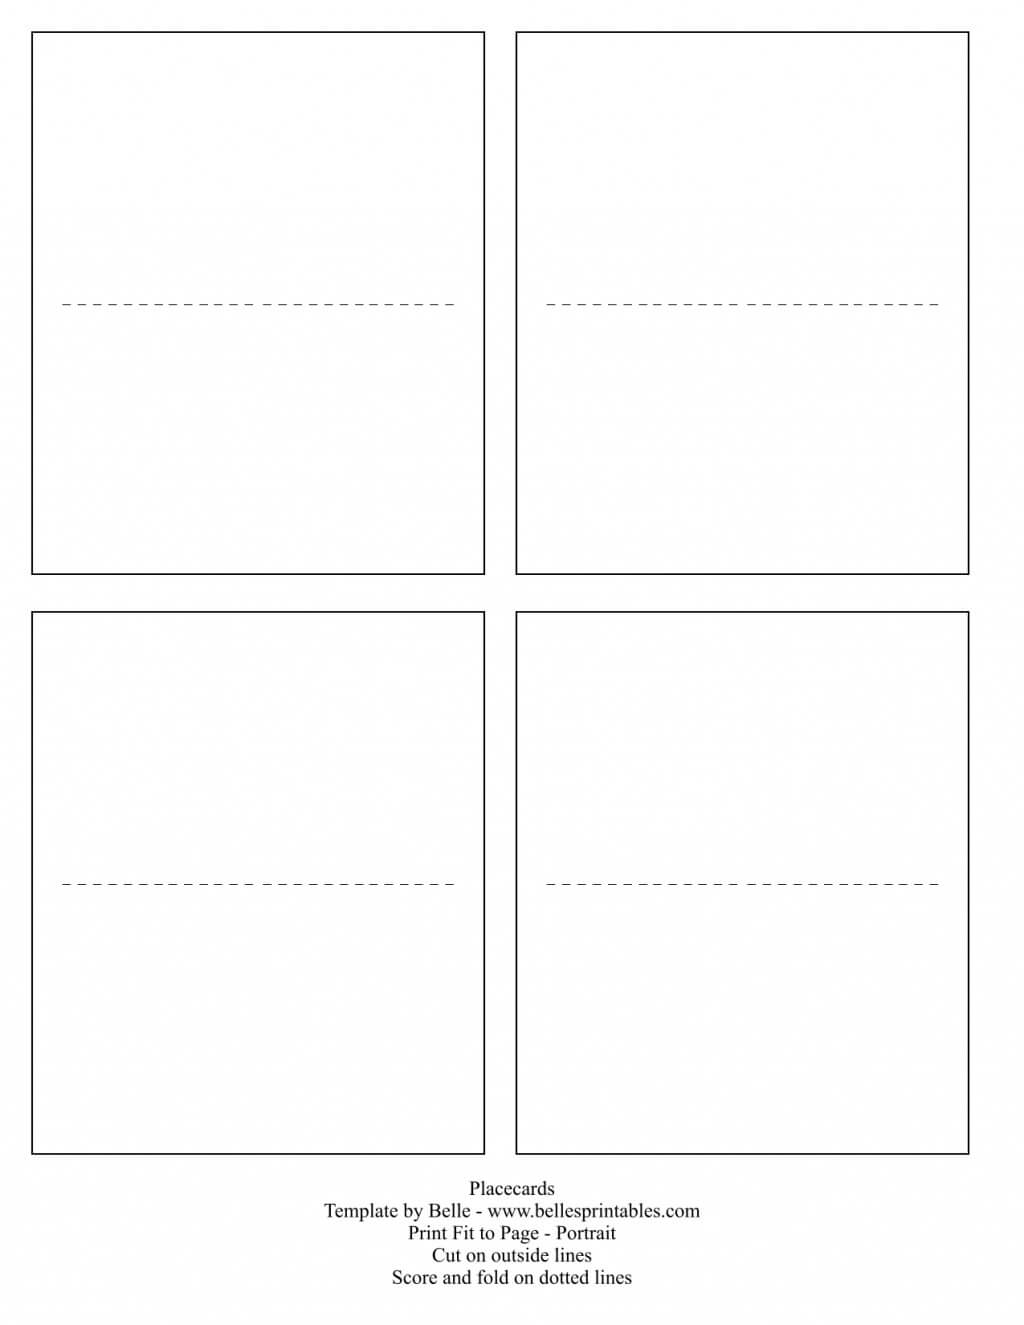 020 Place Cards Template Ideas Placement Card Formidable Within Imprintable Place Cards Template